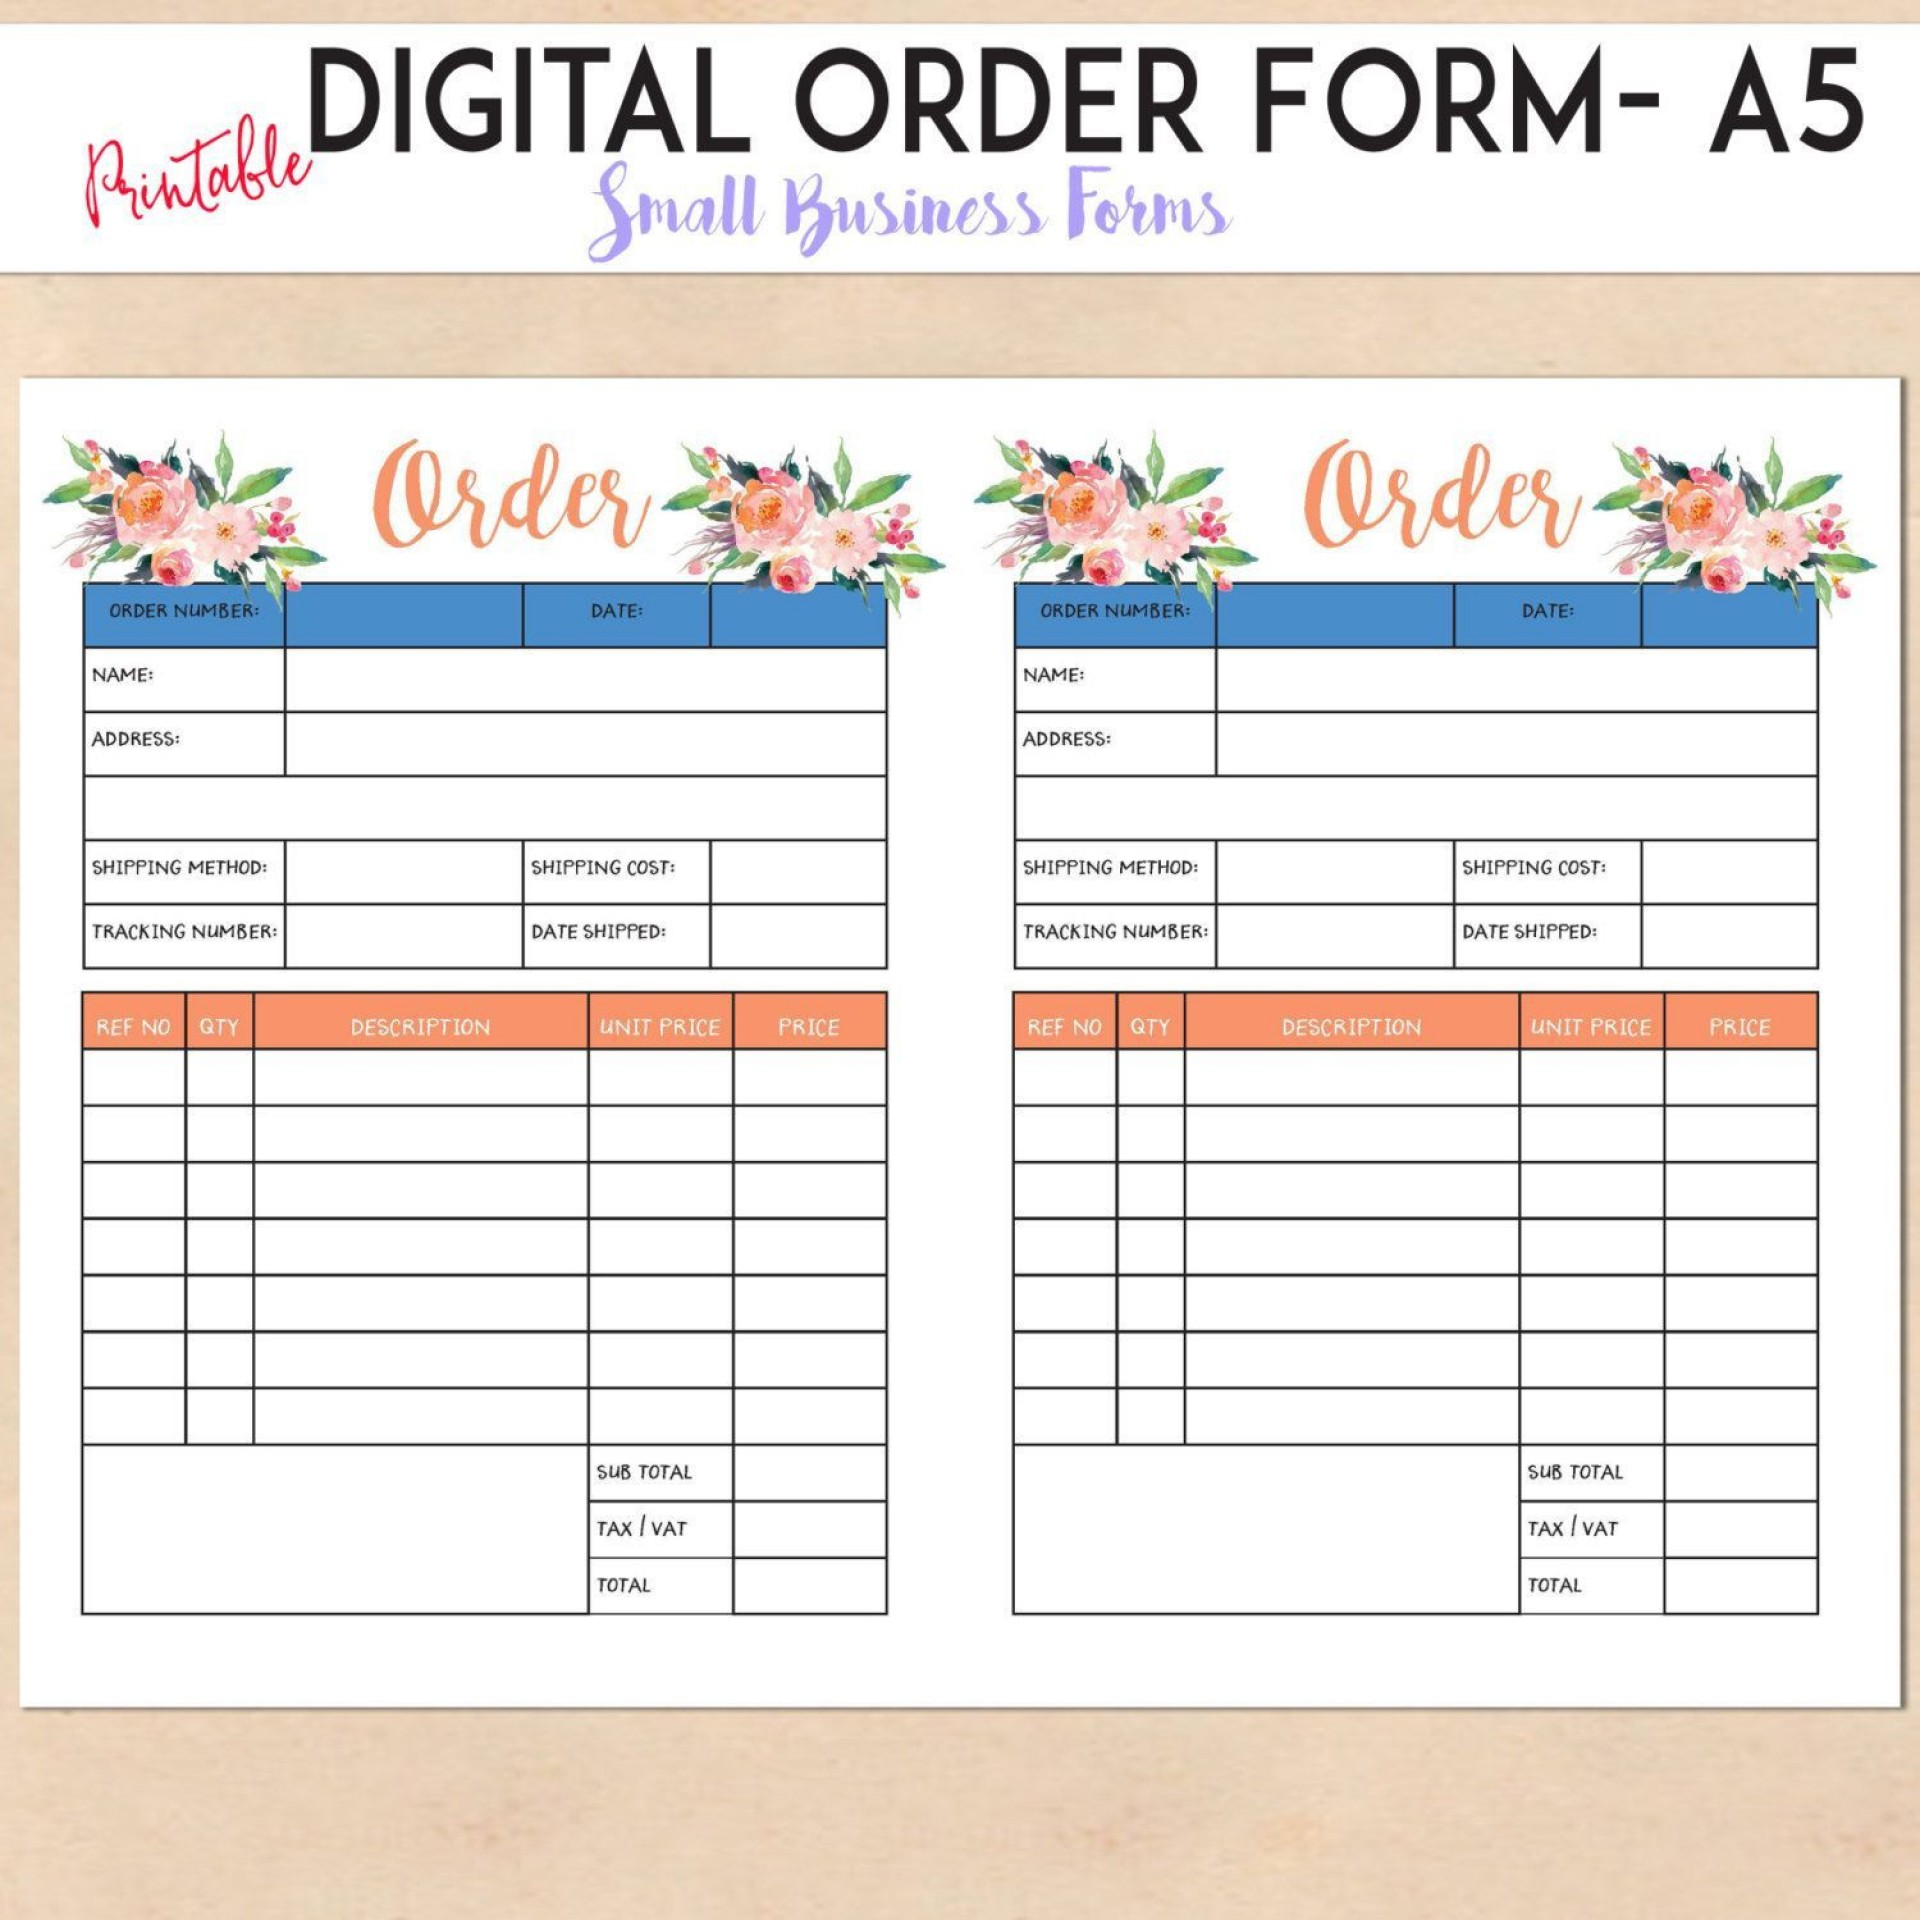 004 Surprising Custom Order Form Template Free Concept  Editable T Shirt Tumbler1920